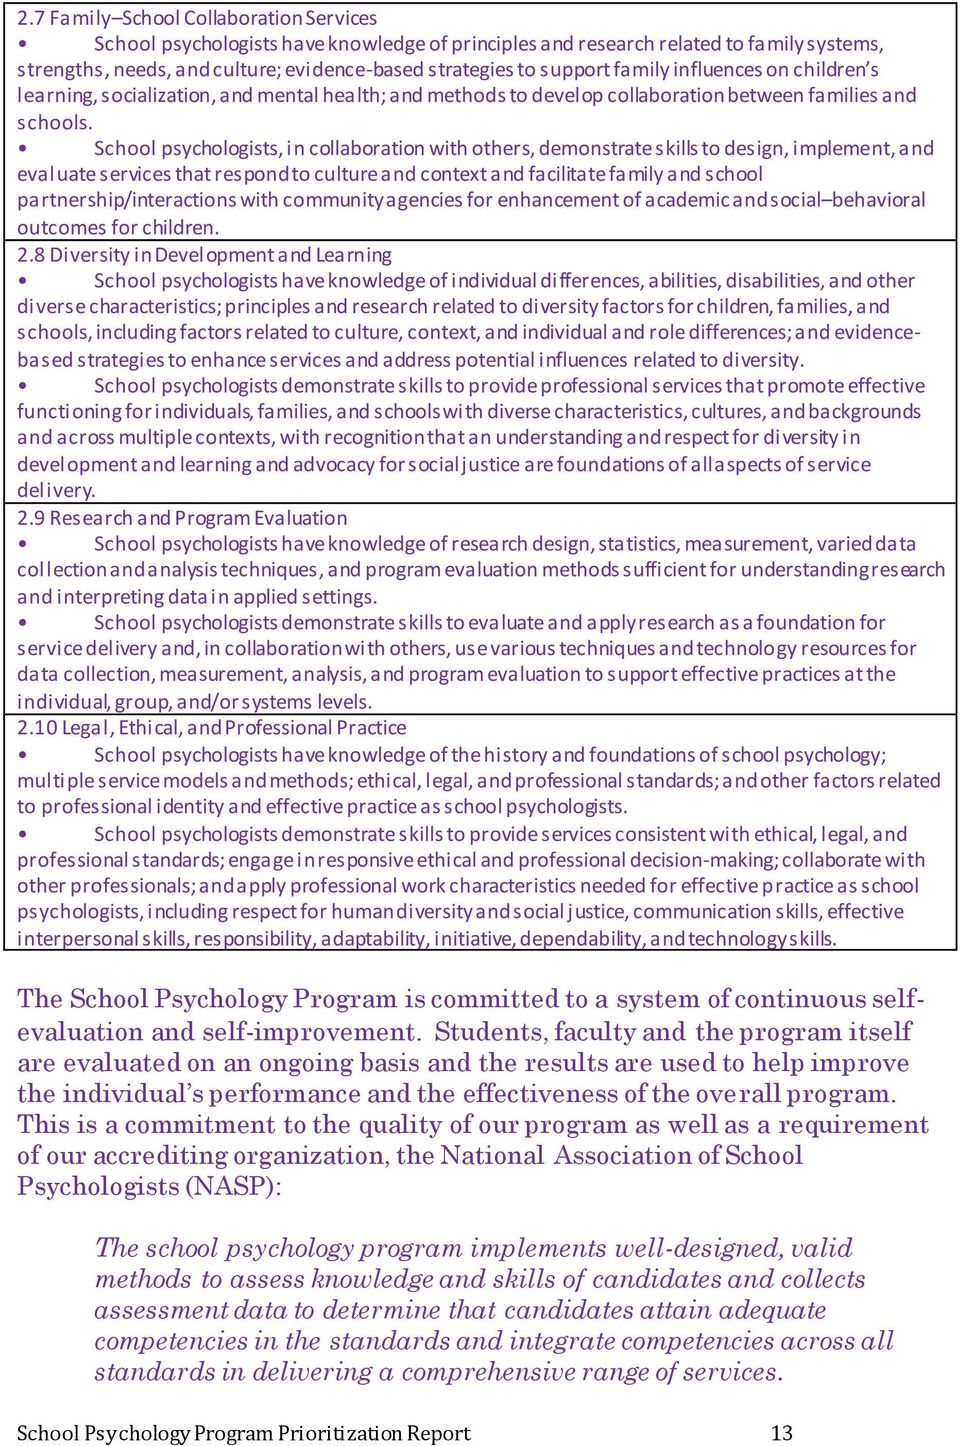 School psychologists, in collaboration with others, demonstrate skills to design, implement, and evaluate services that respond to culture and context and facilitate family and school